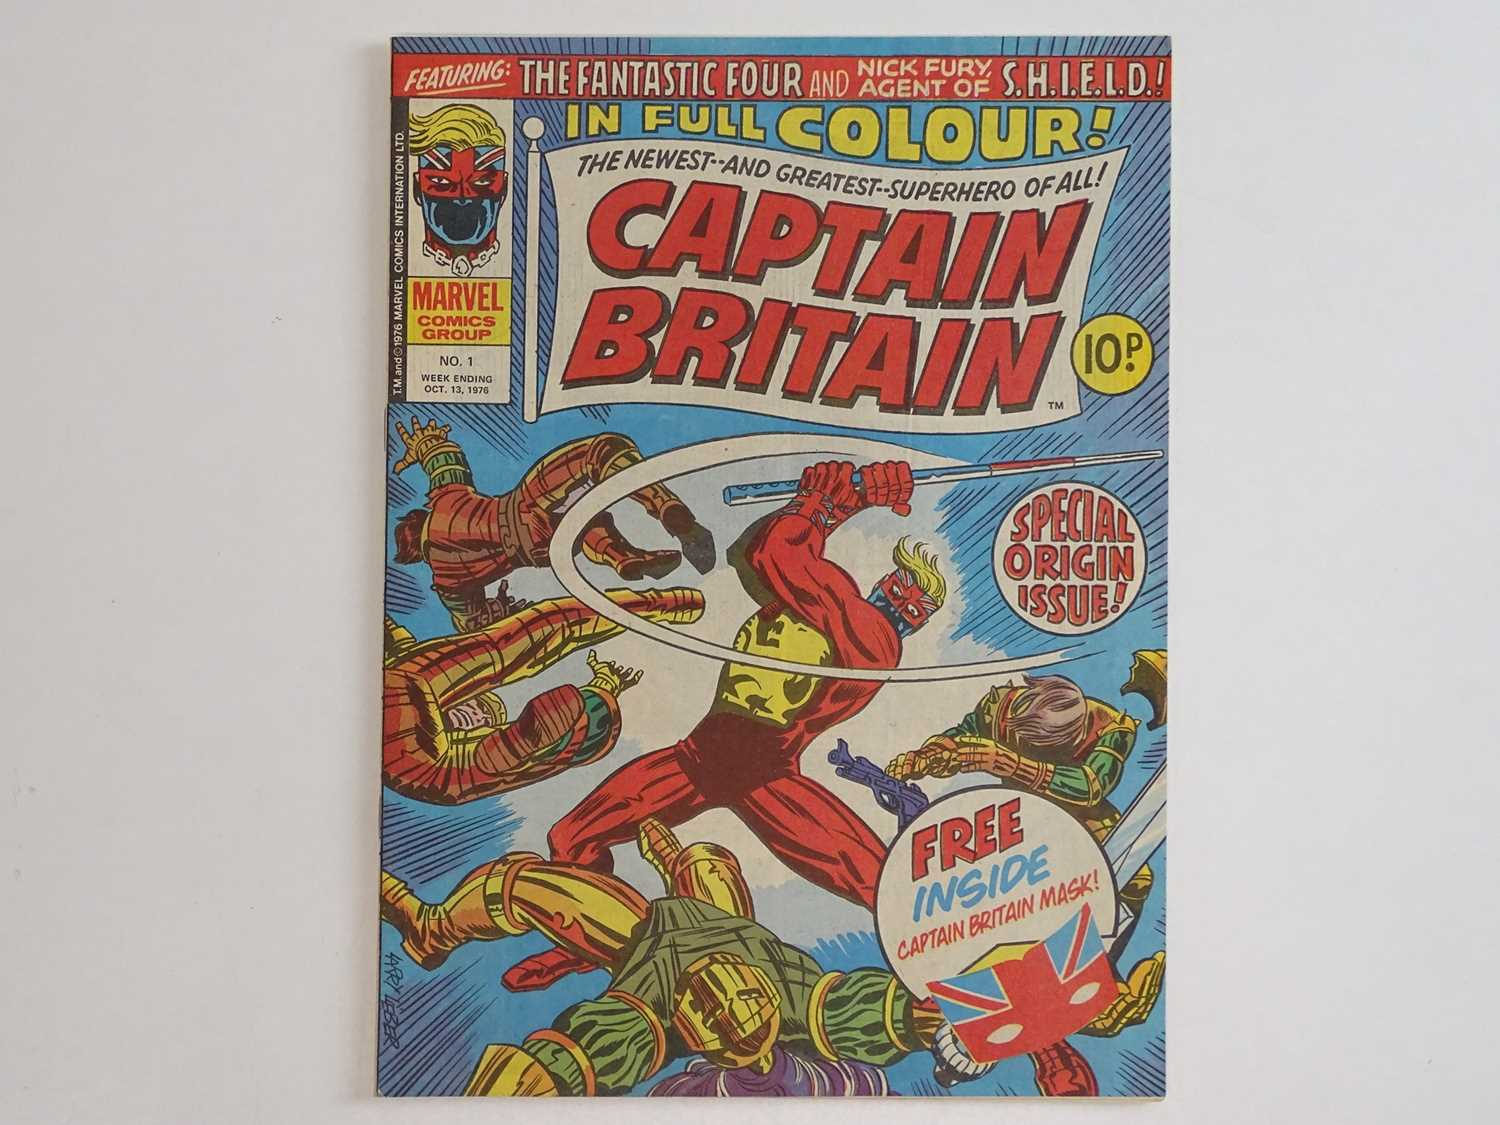 CAPTAIN BRITAIN #1 to 39 - (39 in Lot) - (1976/77 - BRITISH MARVEL) - Complete 39 issue run from # - Image 2 of 11